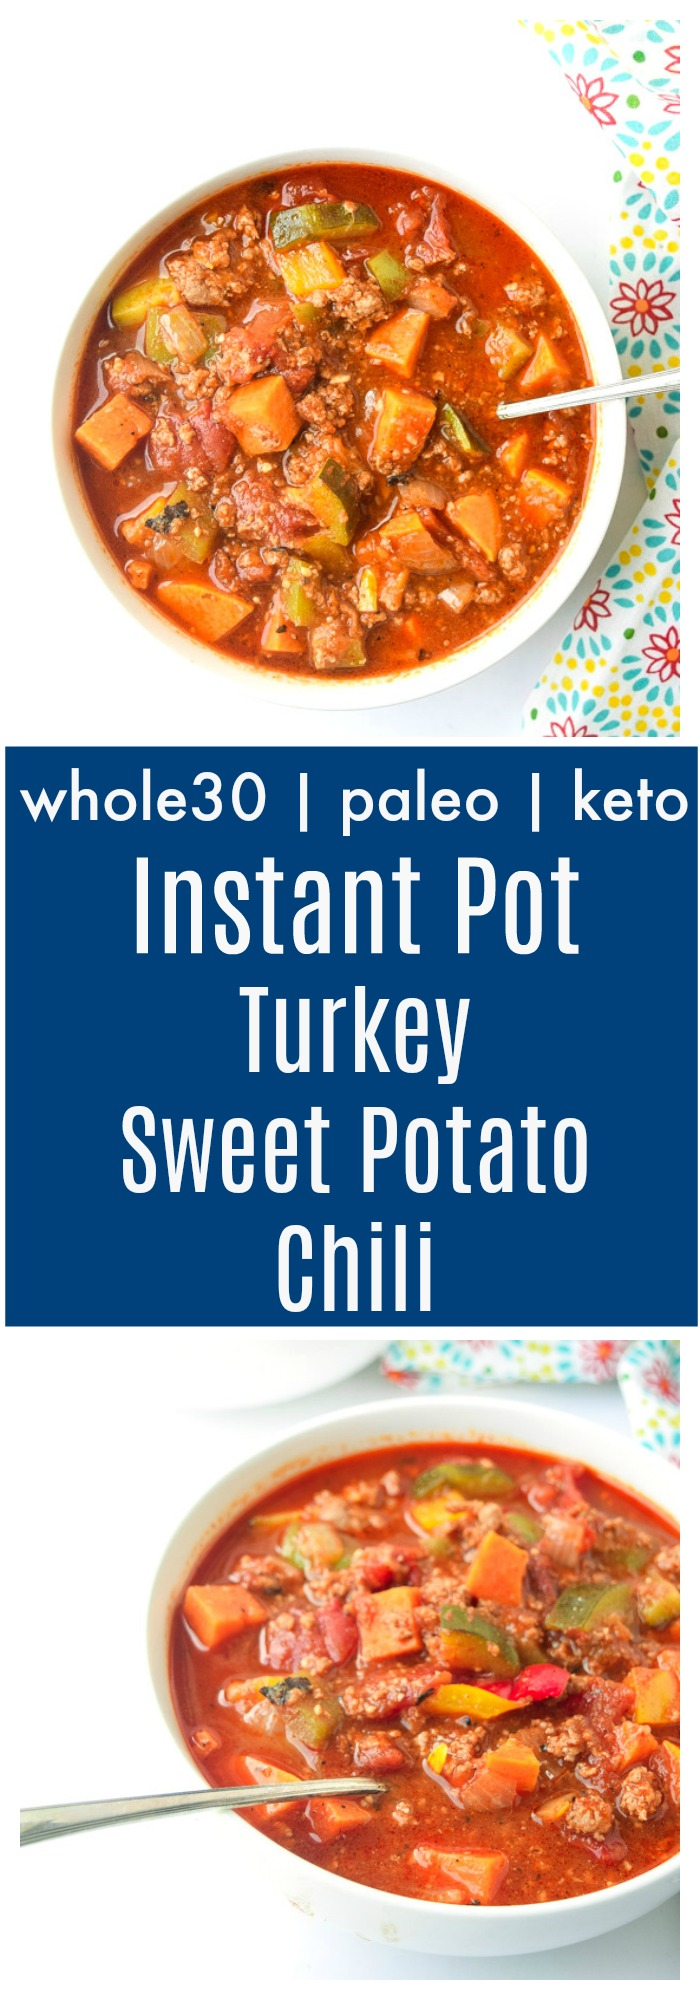 instant pot turkey sweet potato chili